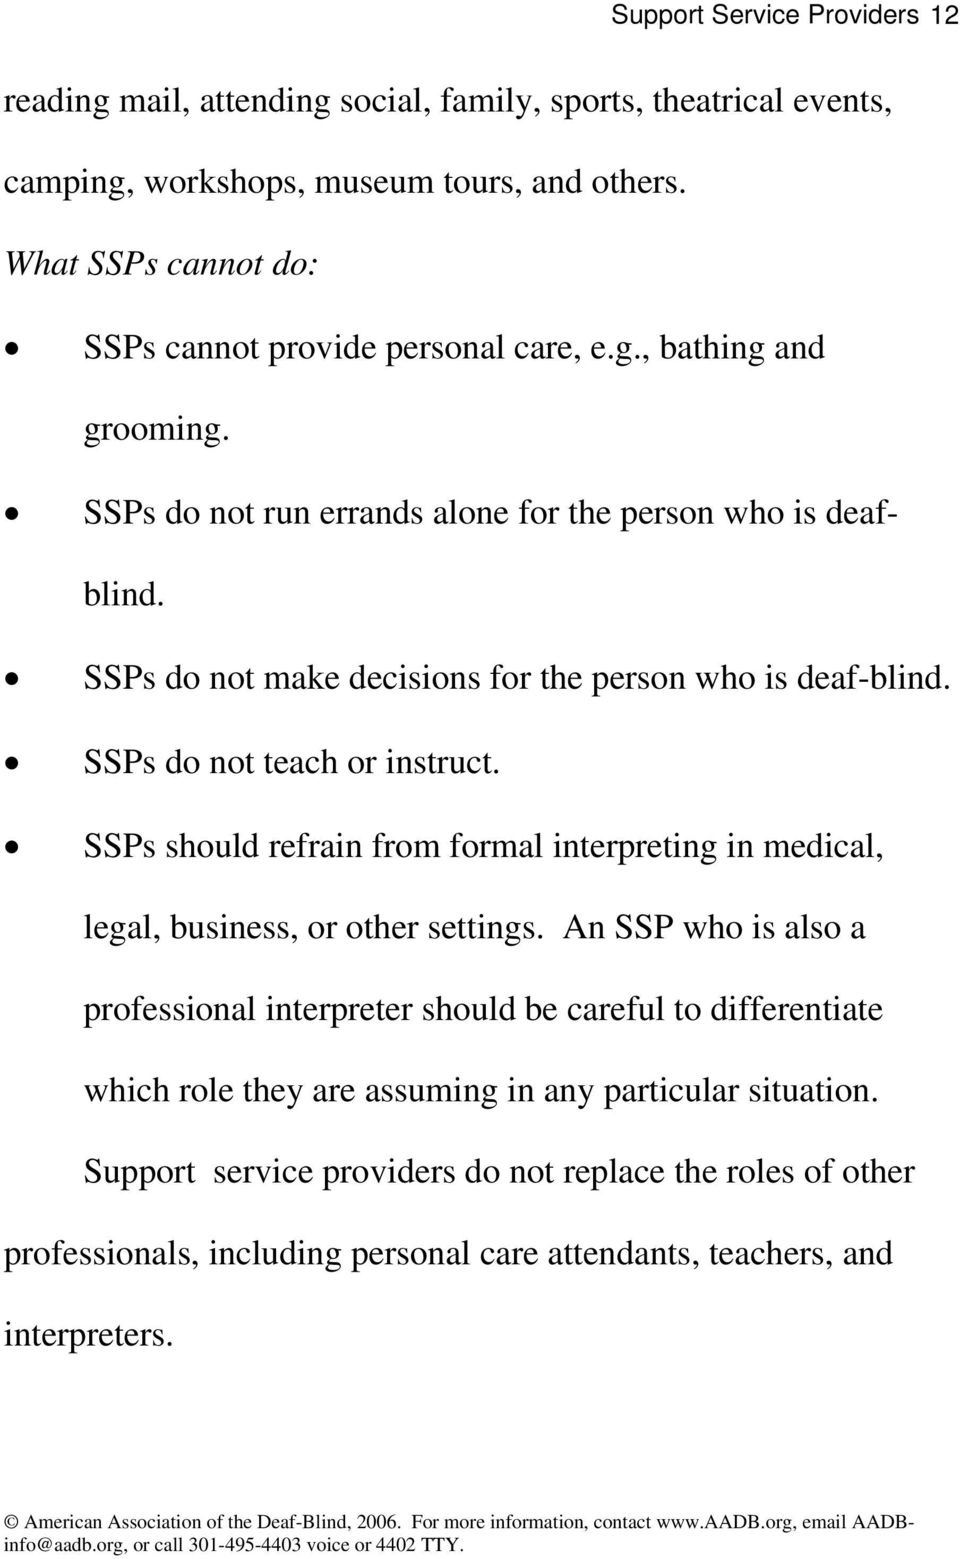 SSPs do not make decisions for the person who is deaf-blind. SSPs do not teach or instruct. SSPs should refrain from formal interpreting in medical, legal, business, or other settings.